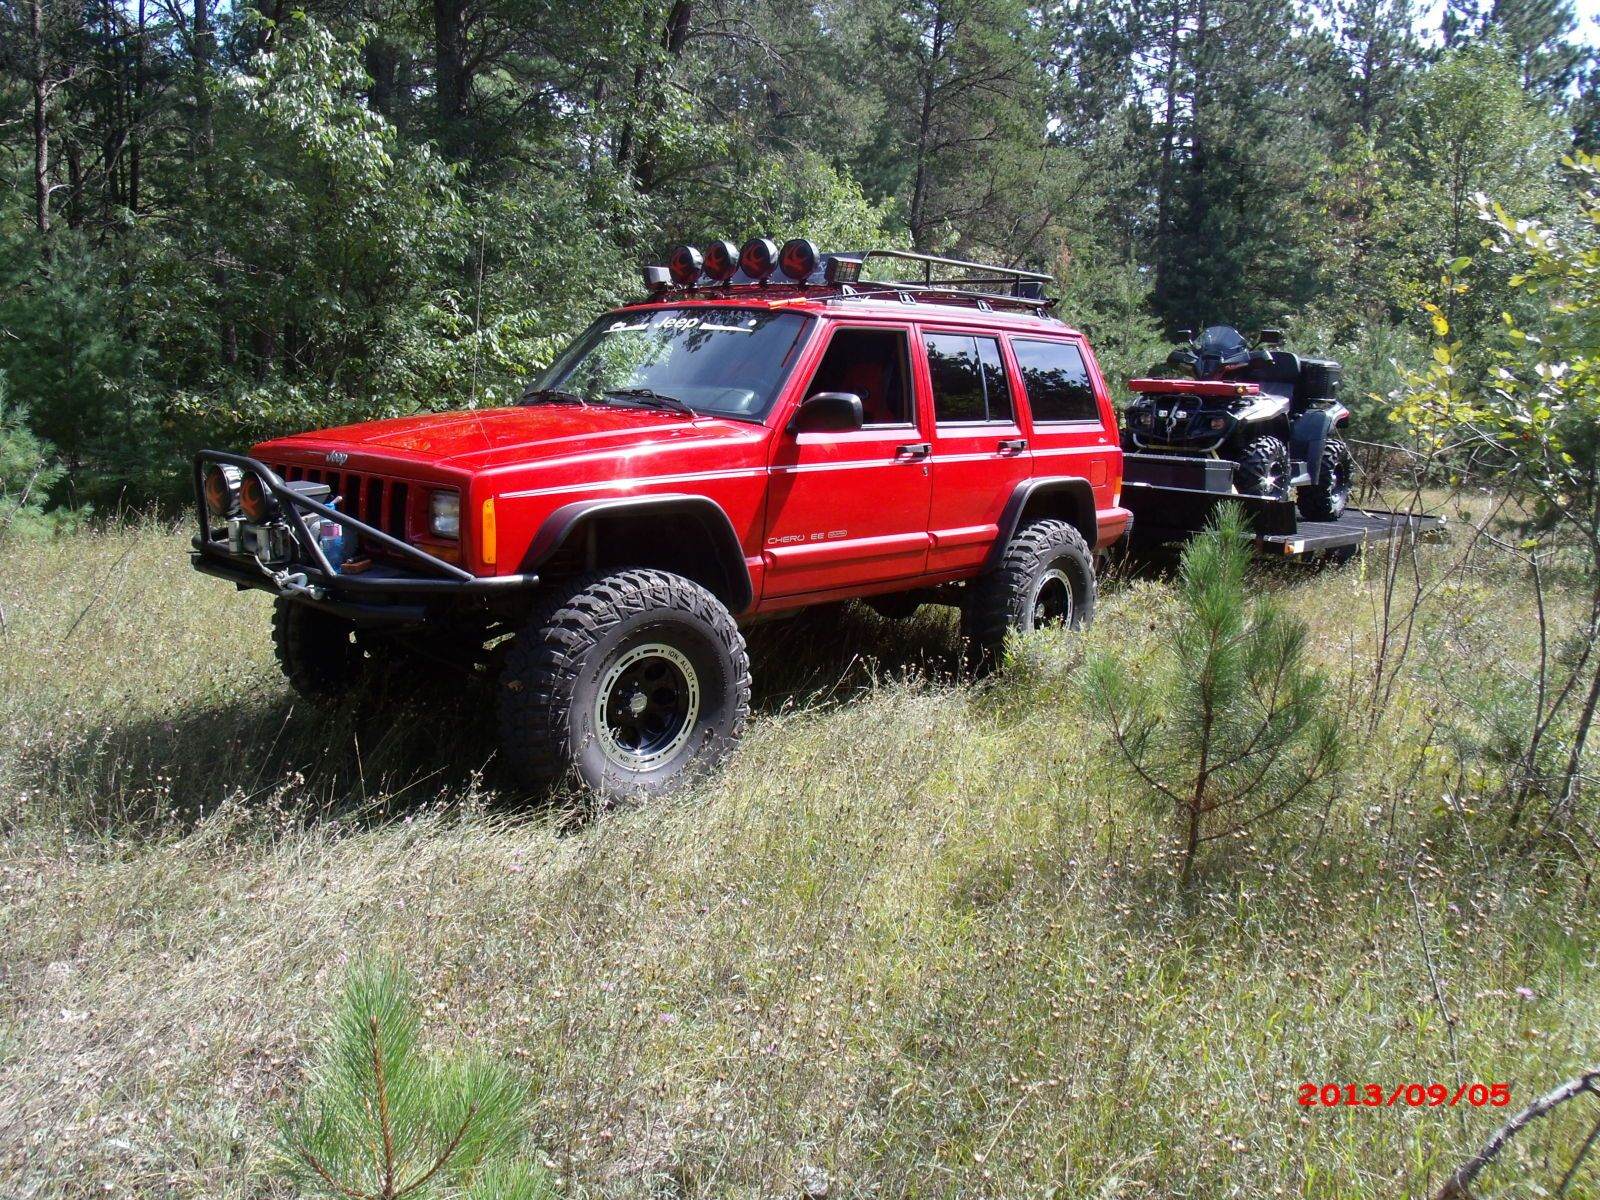 Jeep Cherokee Xj Tent Click The Image To Open In Full Size